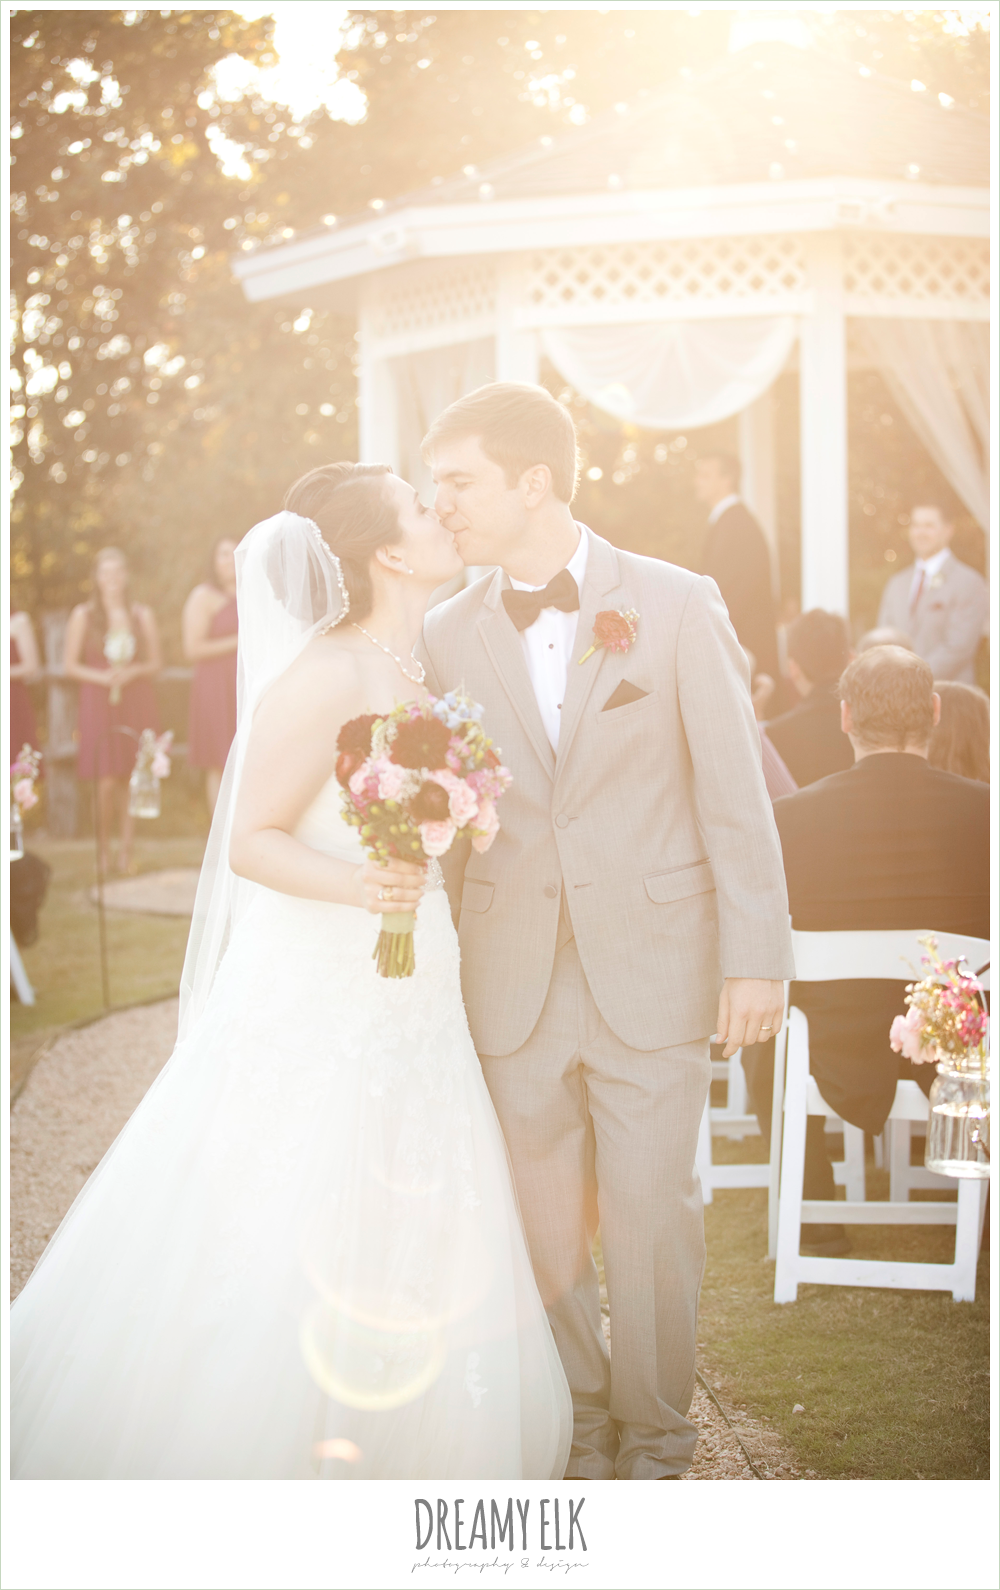 bride and groom kissing, sunflare, october wedding, inn at quarry ridge, dreamy elk photography and design